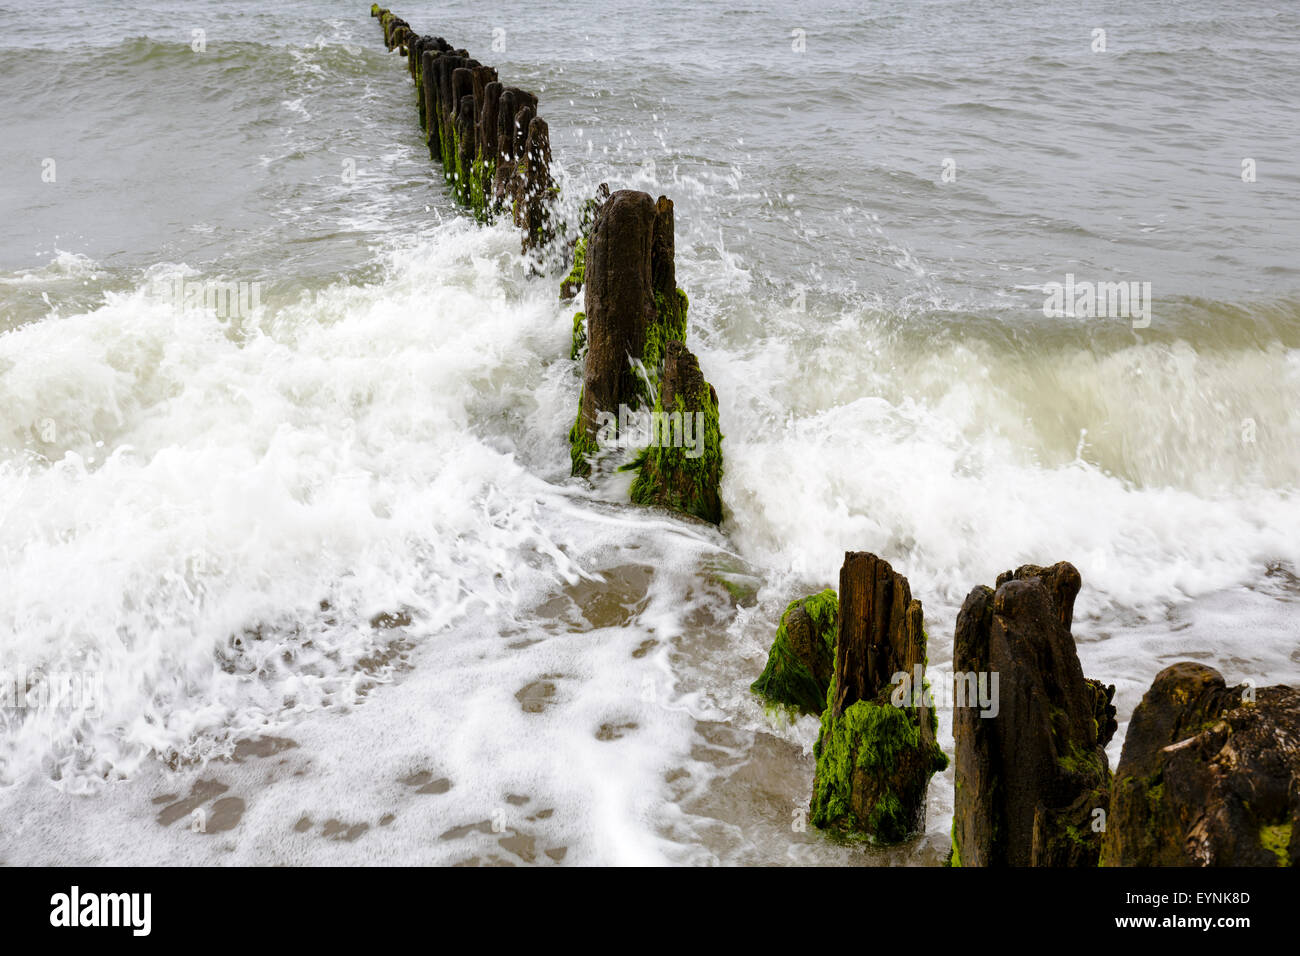 Very old and rotten wooden breakwaters - Stock Image